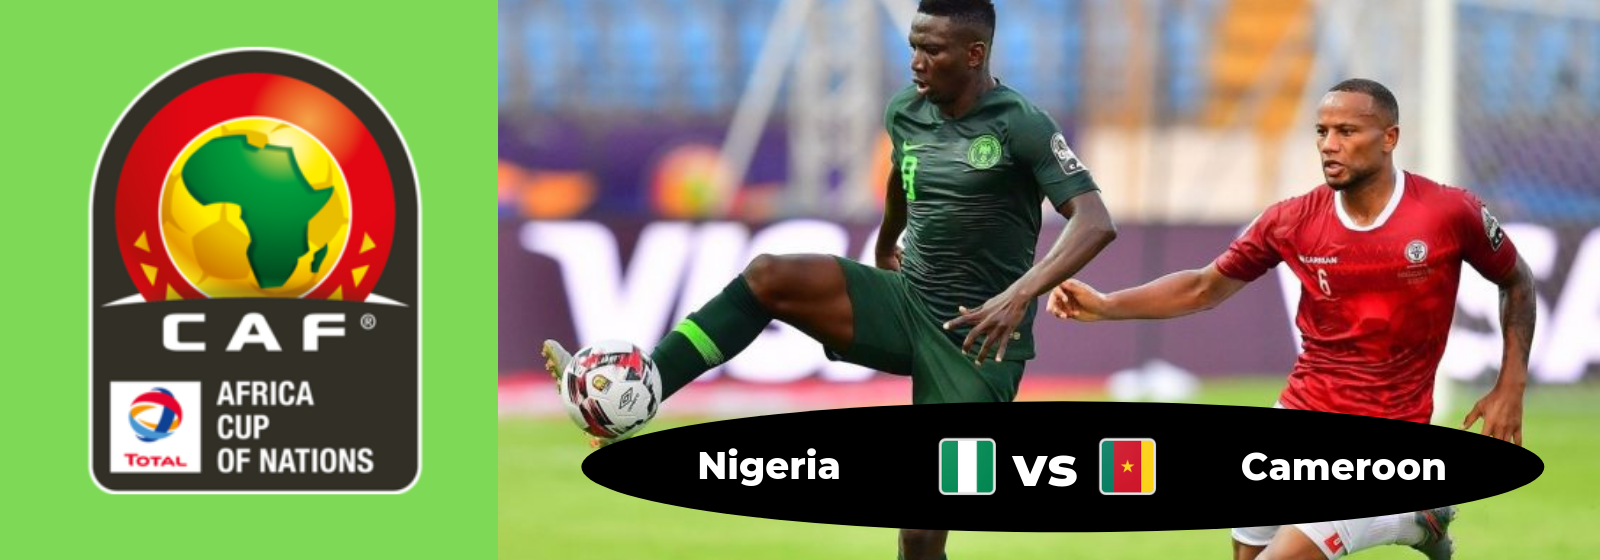 Africa Cup of Nations Nigeria Vs. Cameroon Asian Connect